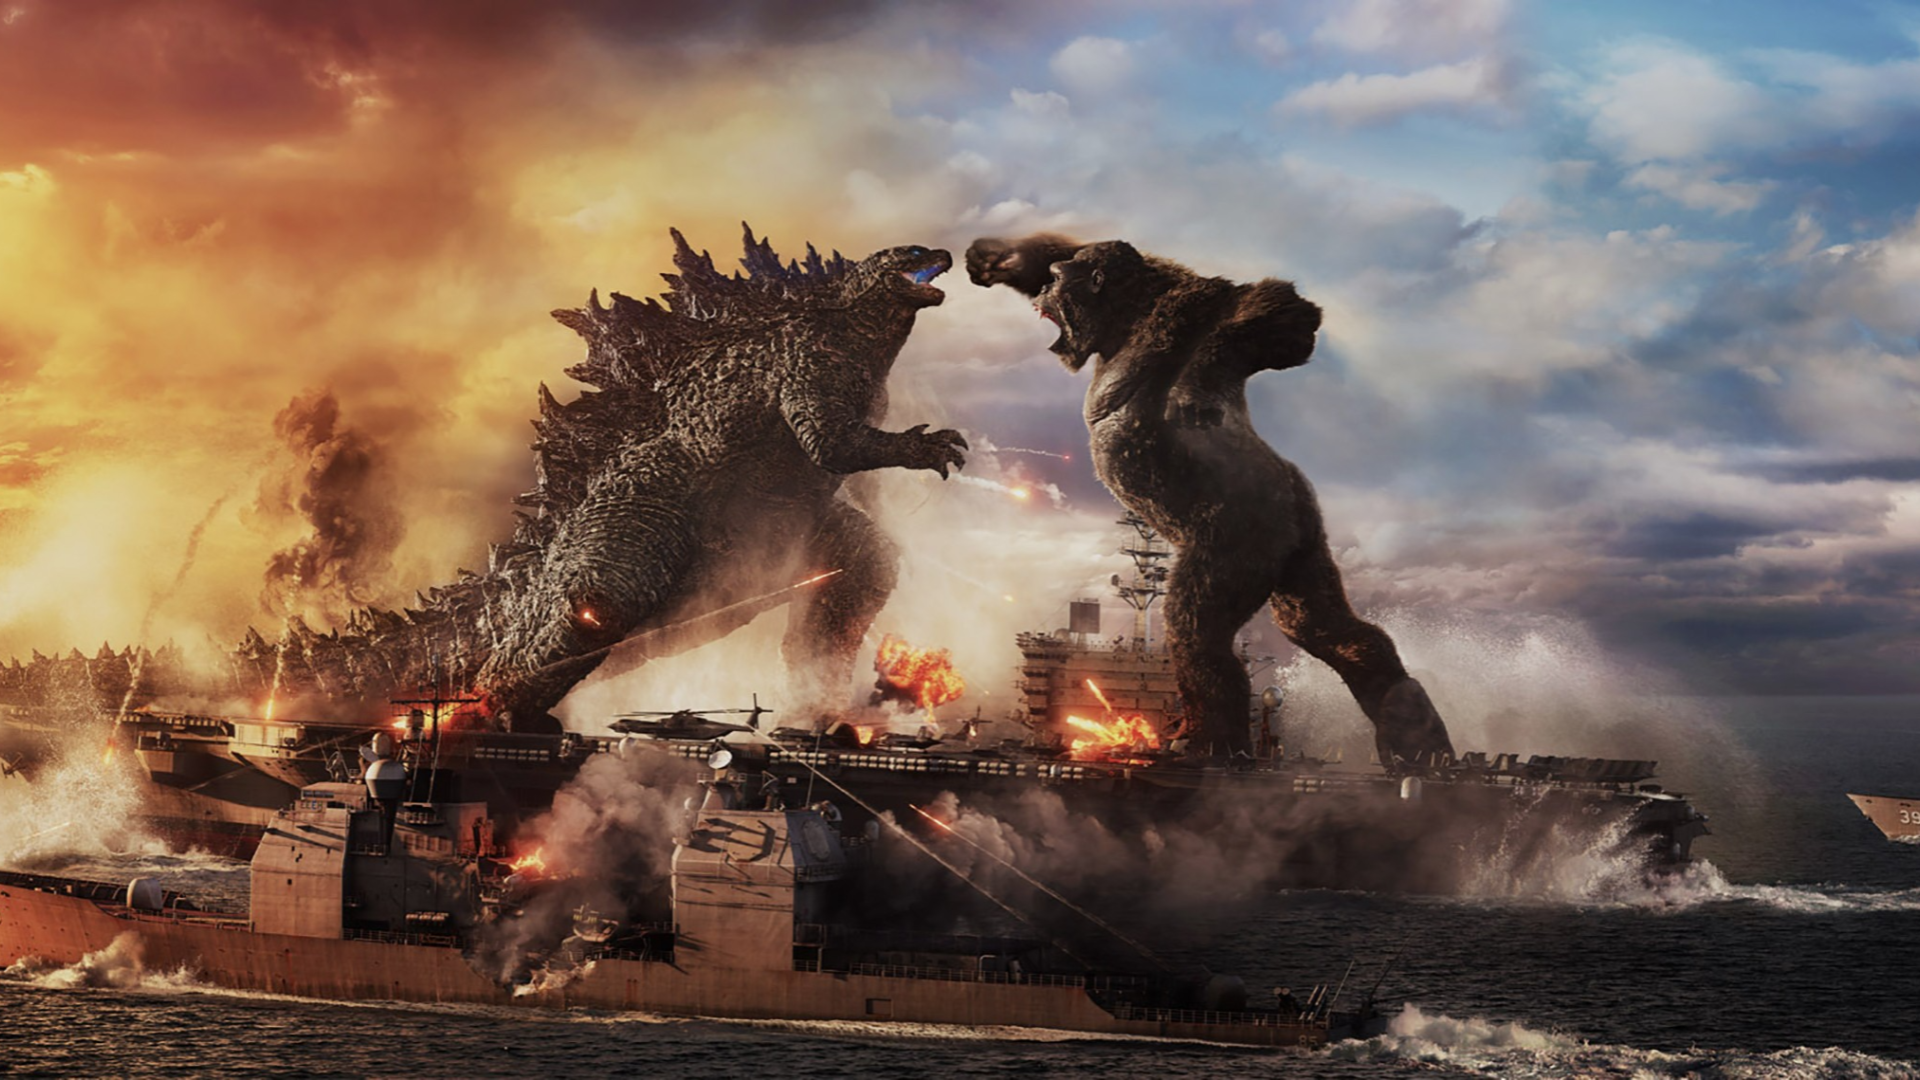 Godzilla Vs Kong - Exciting Theatrical Releases in March 2021